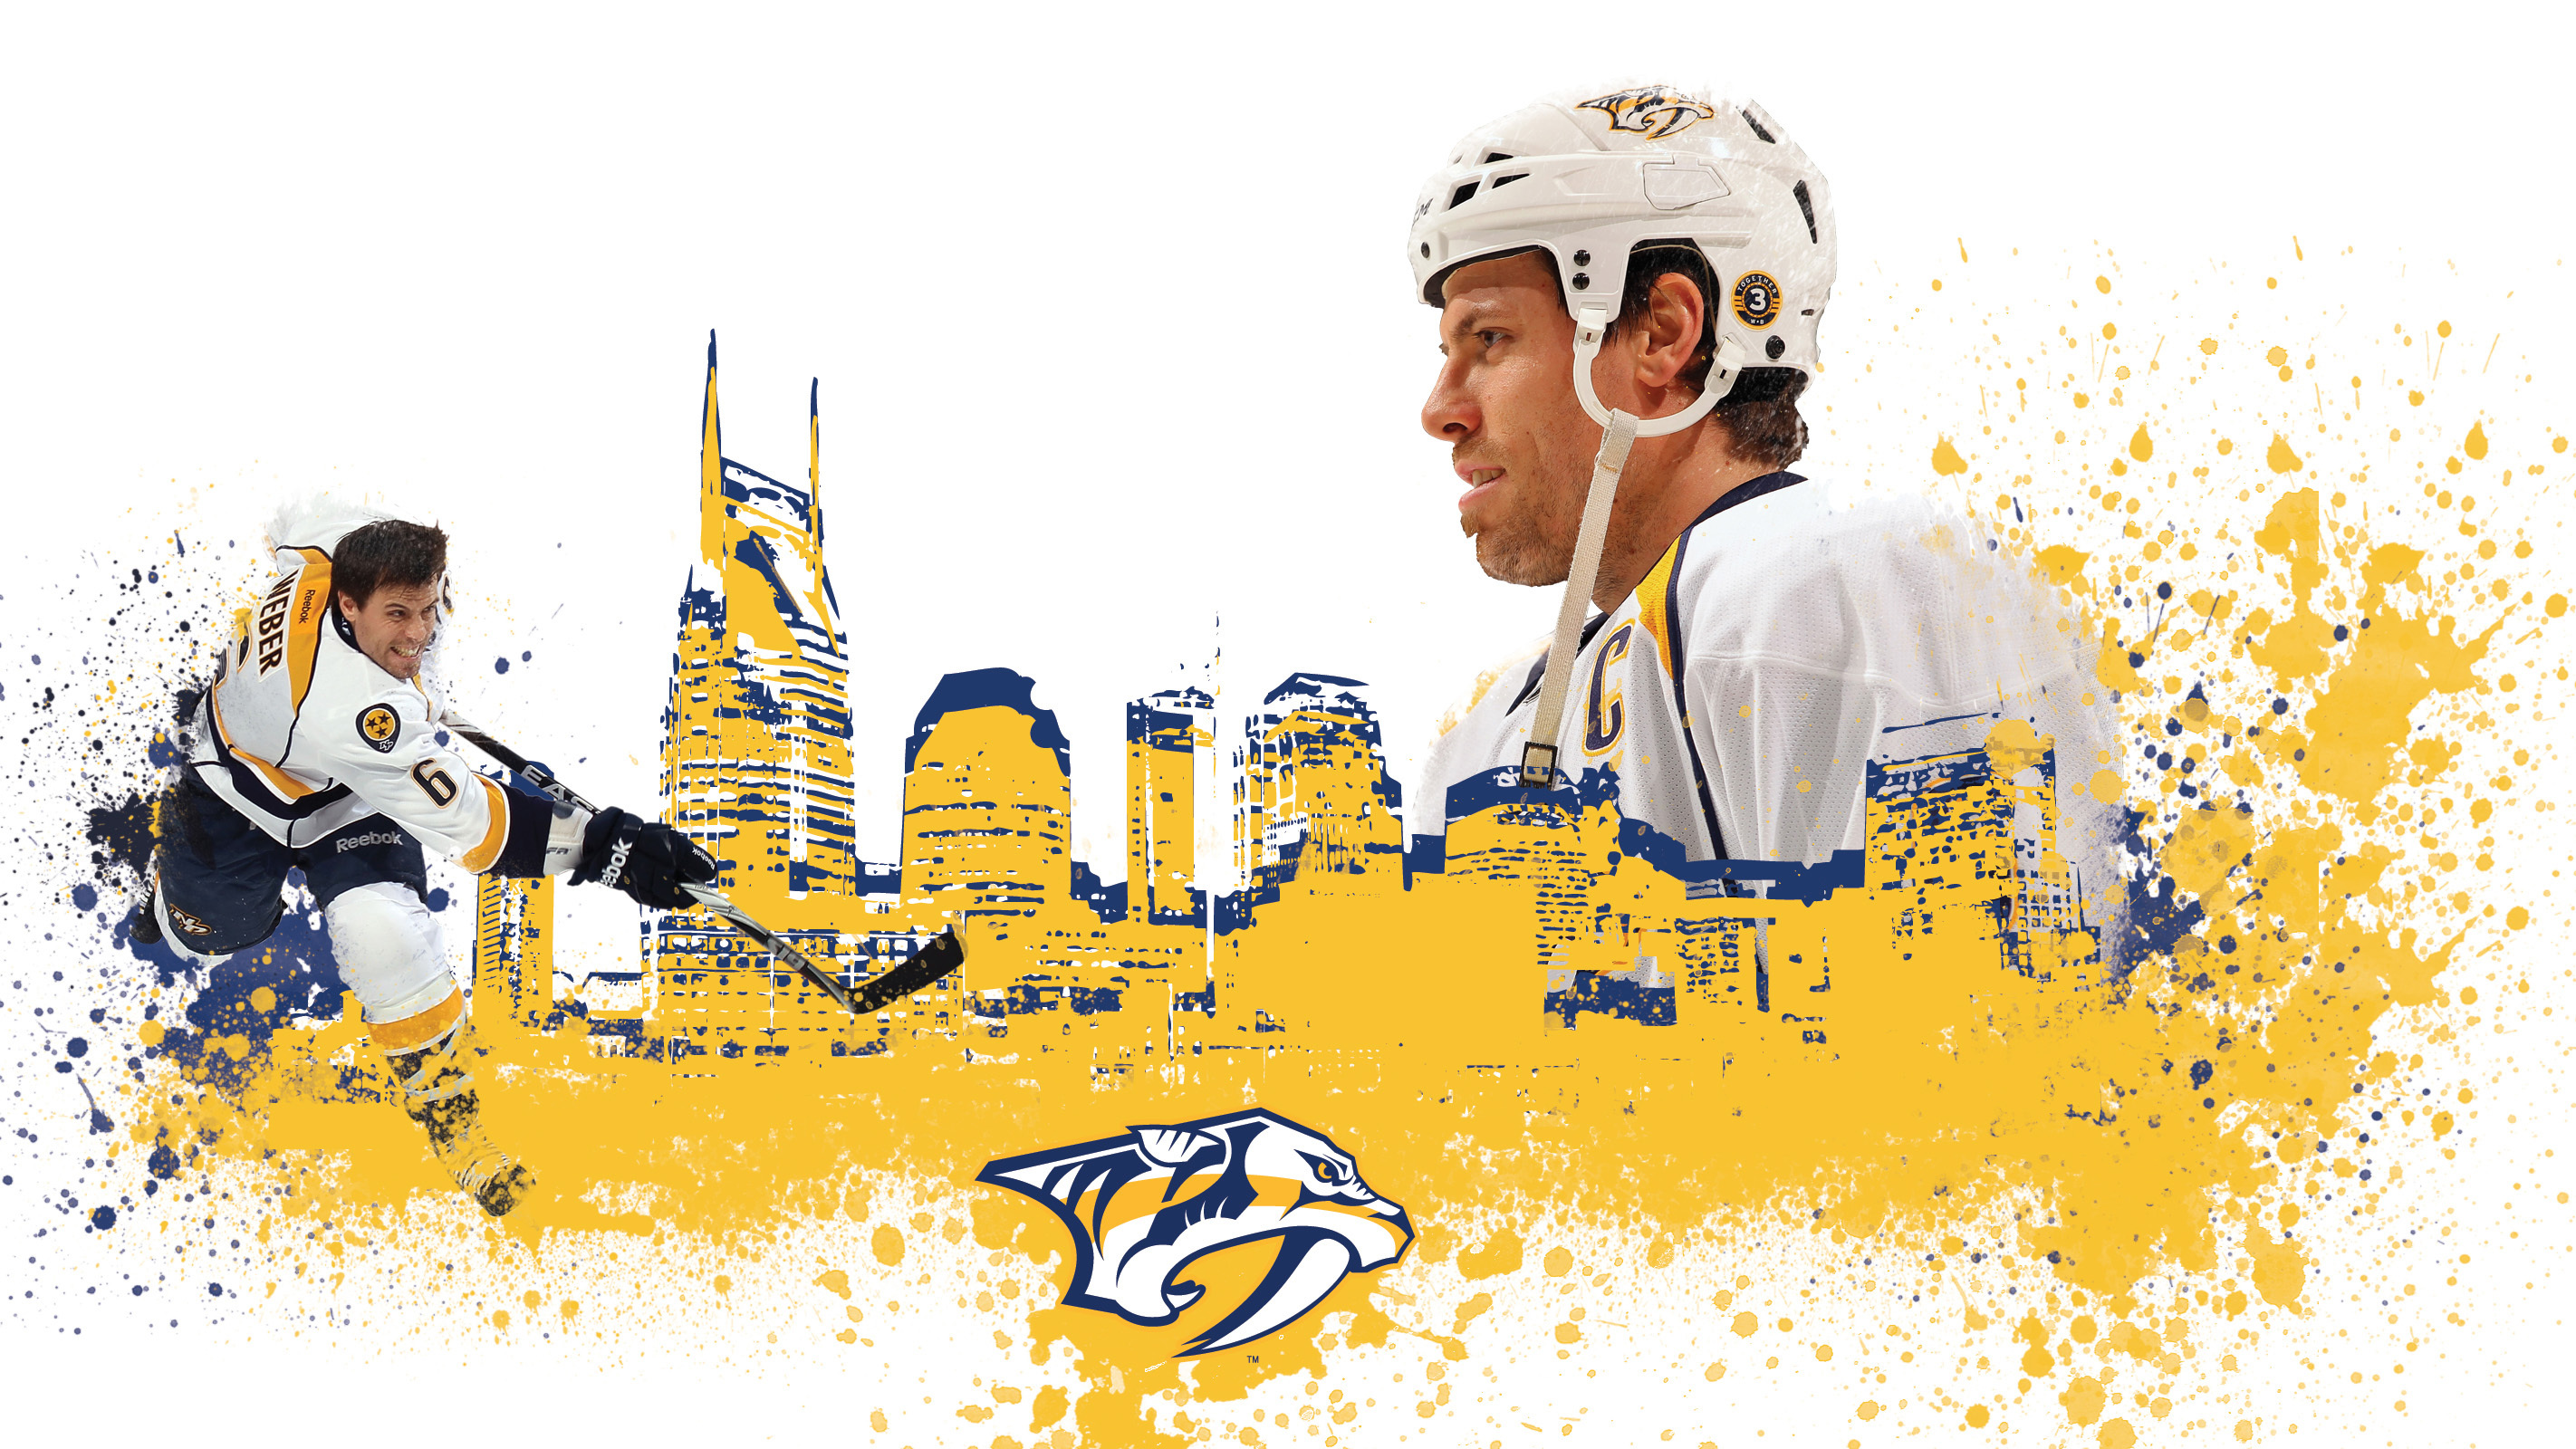 NHL player SHEA Weber wallpapers and images   wallpapers pictures 2844x1600